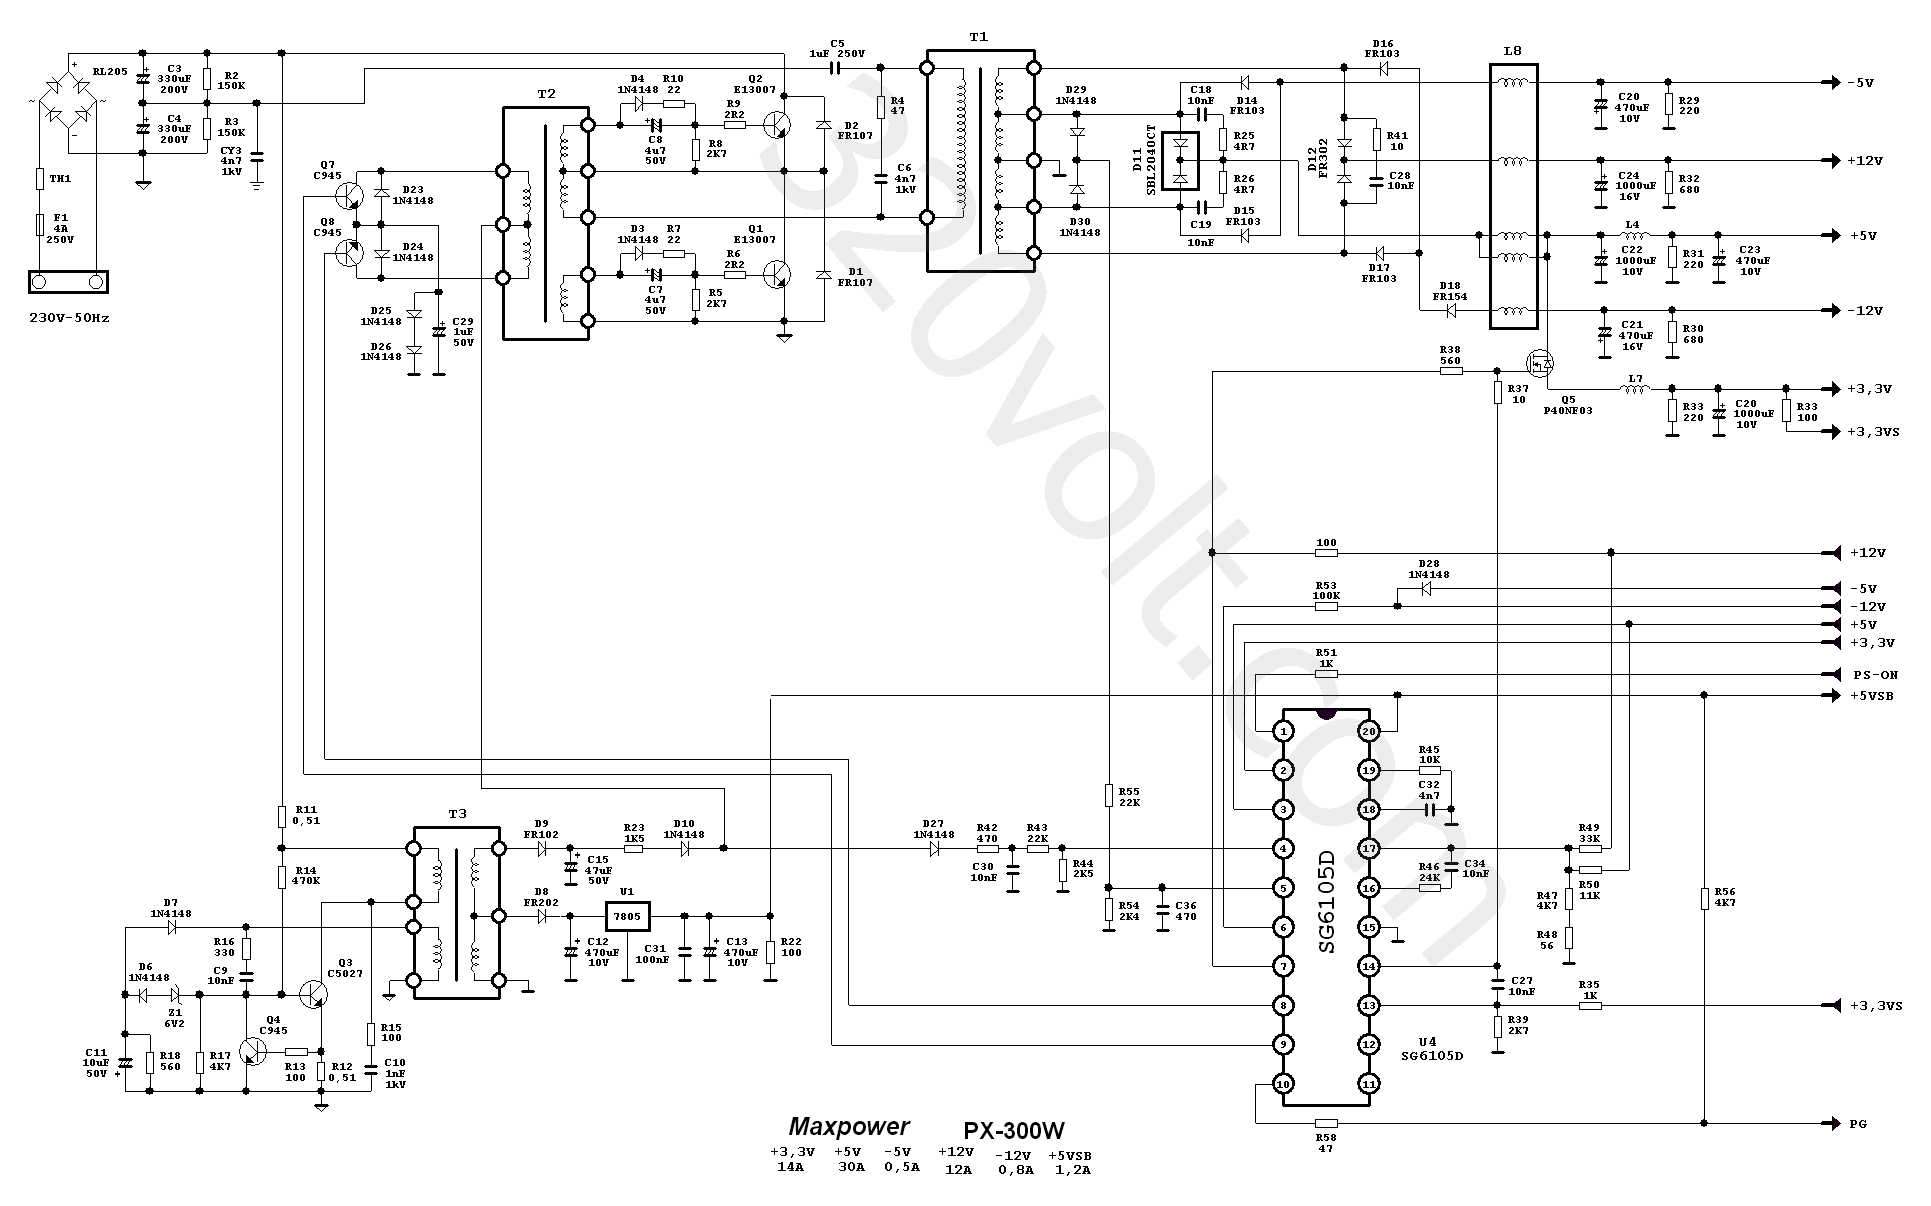 Atx At Smps Circuit Schematic Dna1005a Maxpower Px 300w